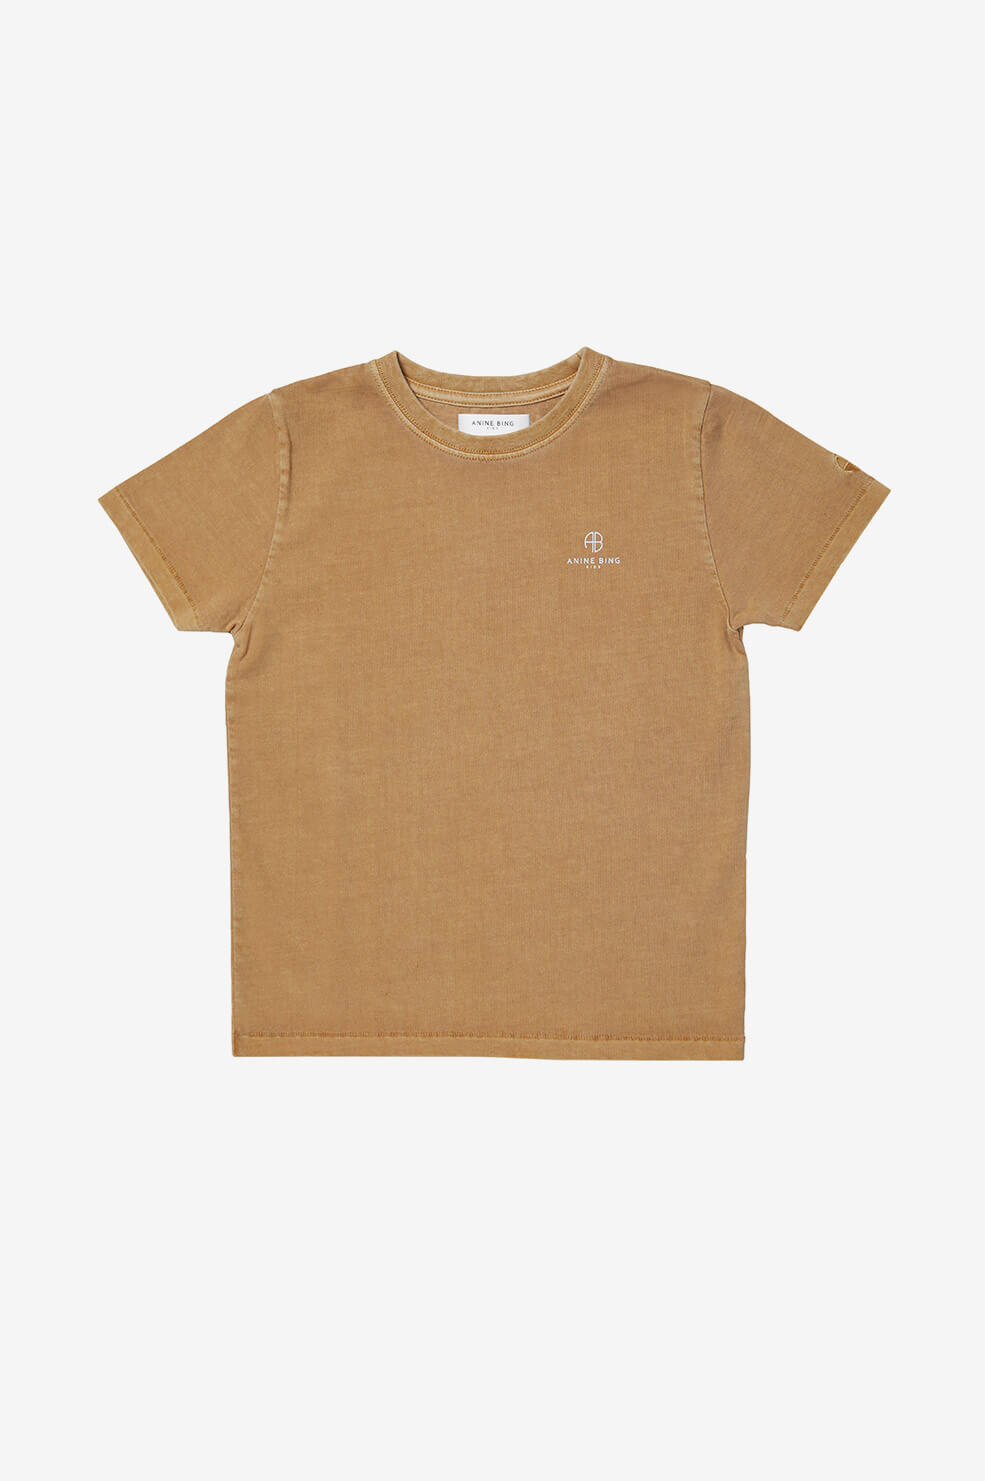 Mini Lili Tee - Washed Indigo